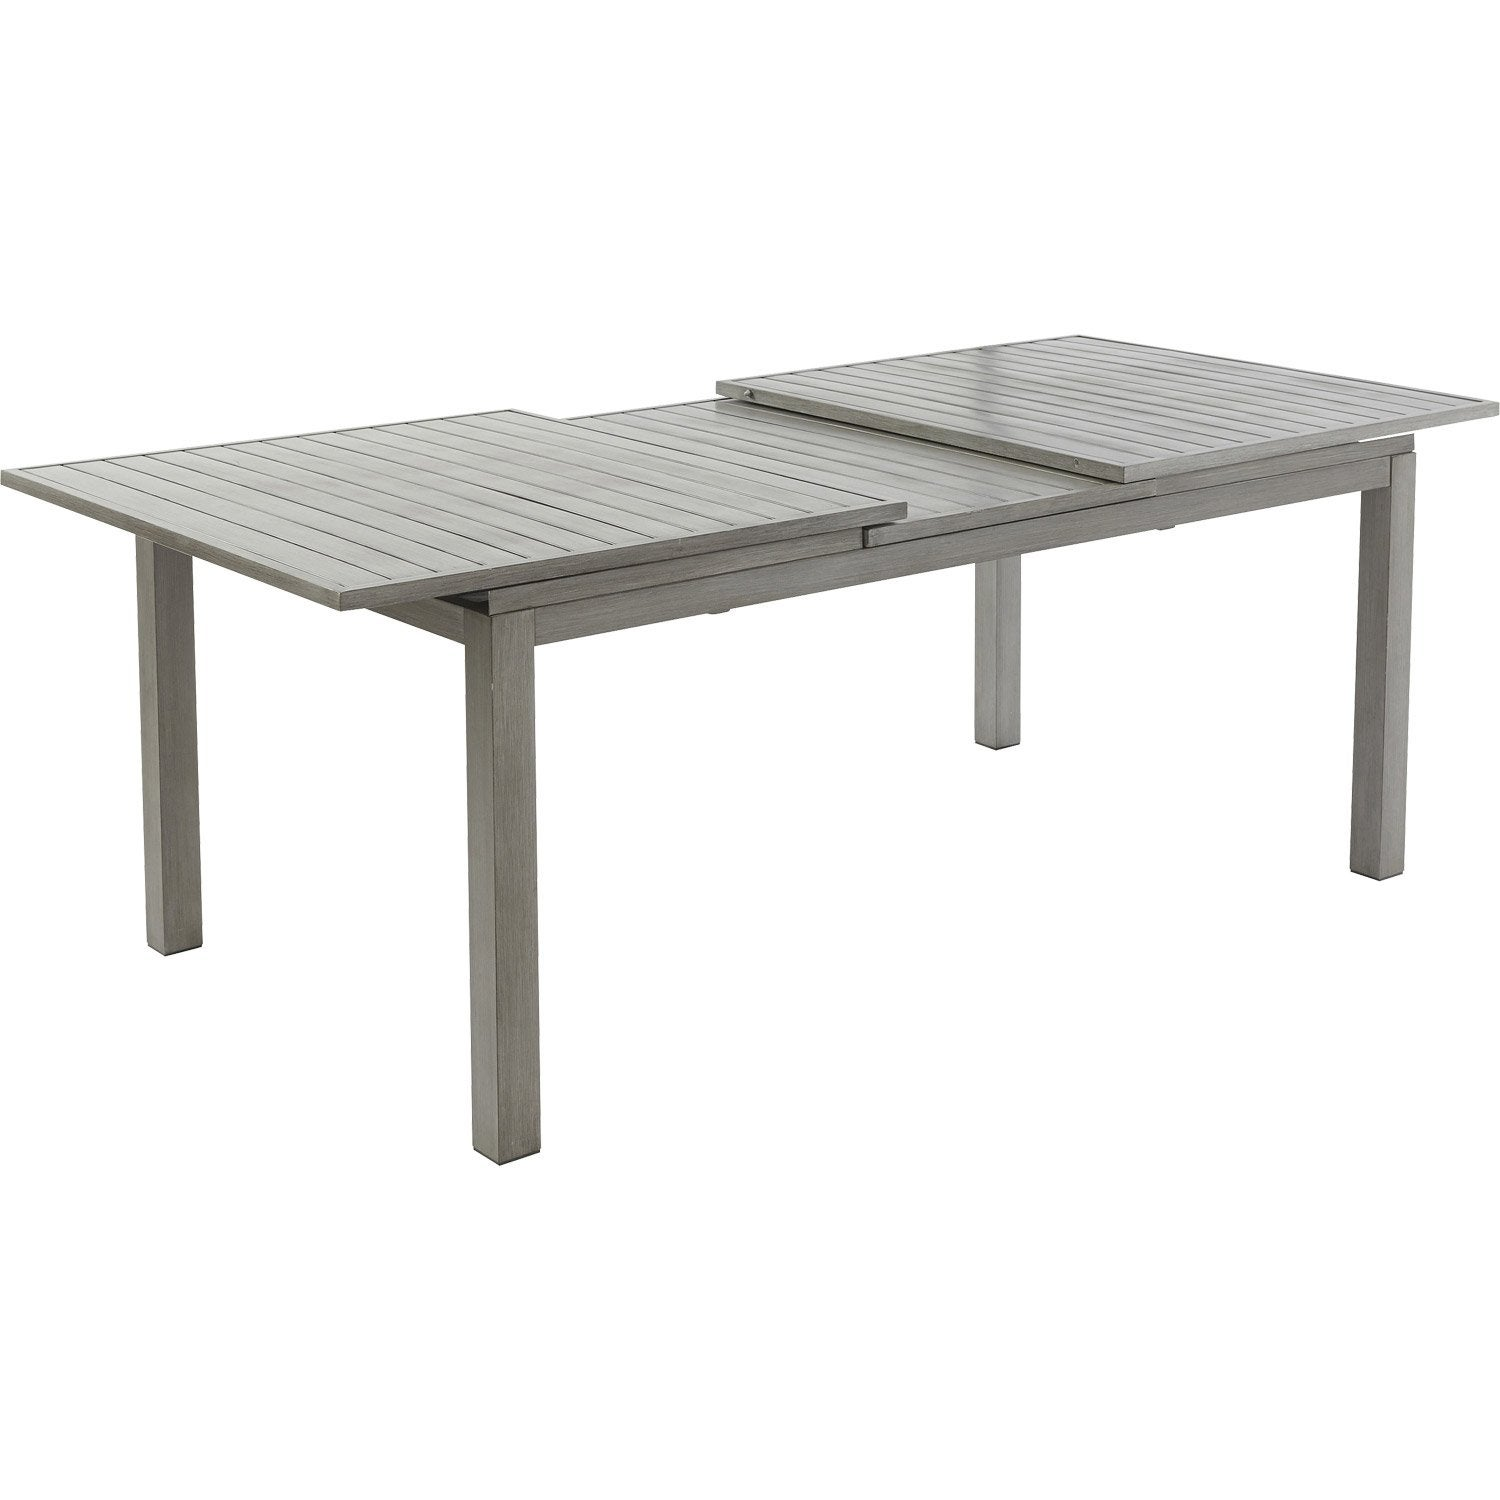 Table de jardin avec extension rectangulaire aluwood for Table de jardin terrasse